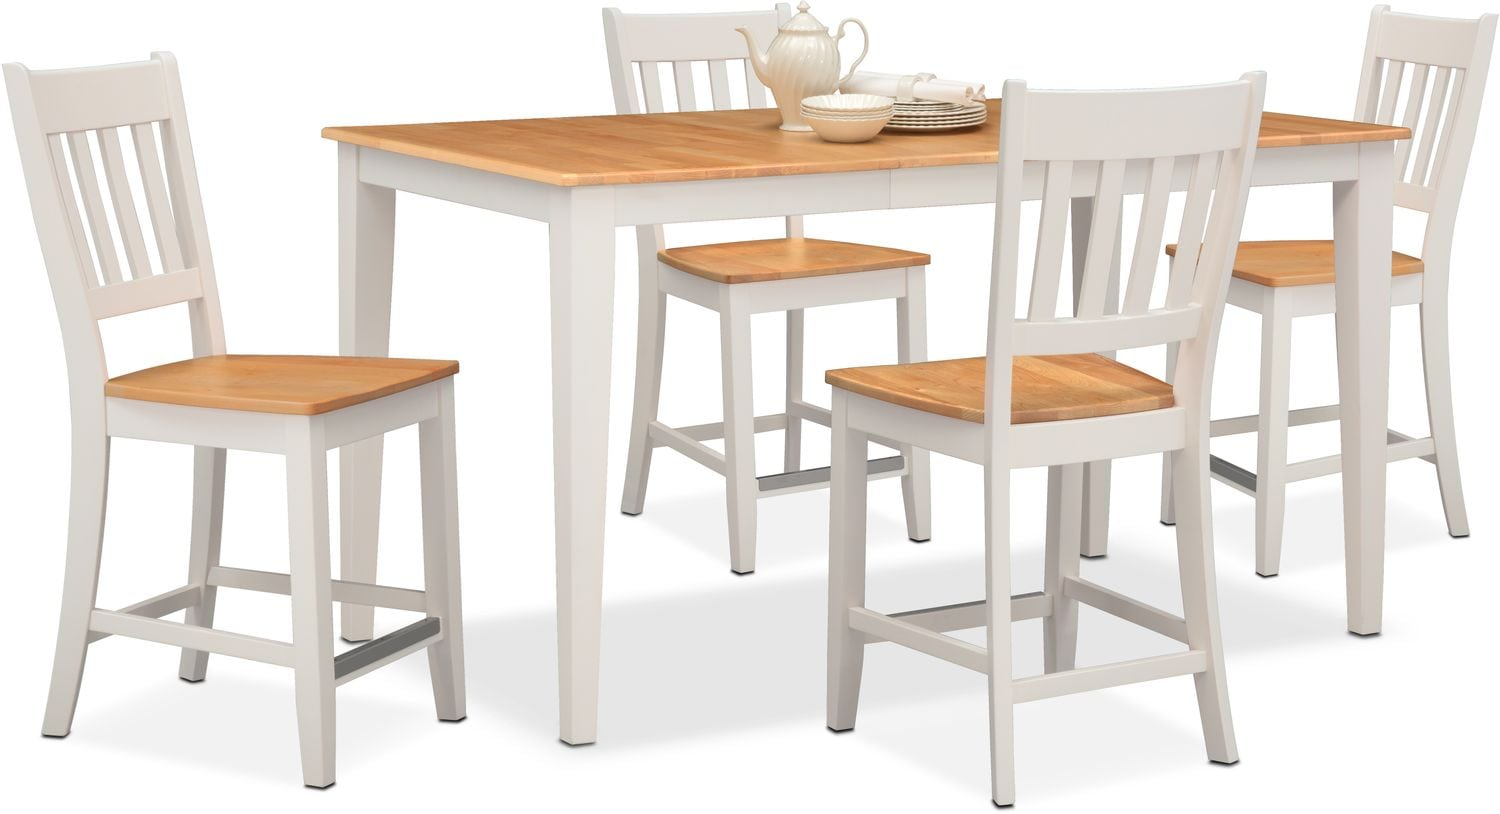 Nantucket Counter Height Table And 4 Slat Back Chairs